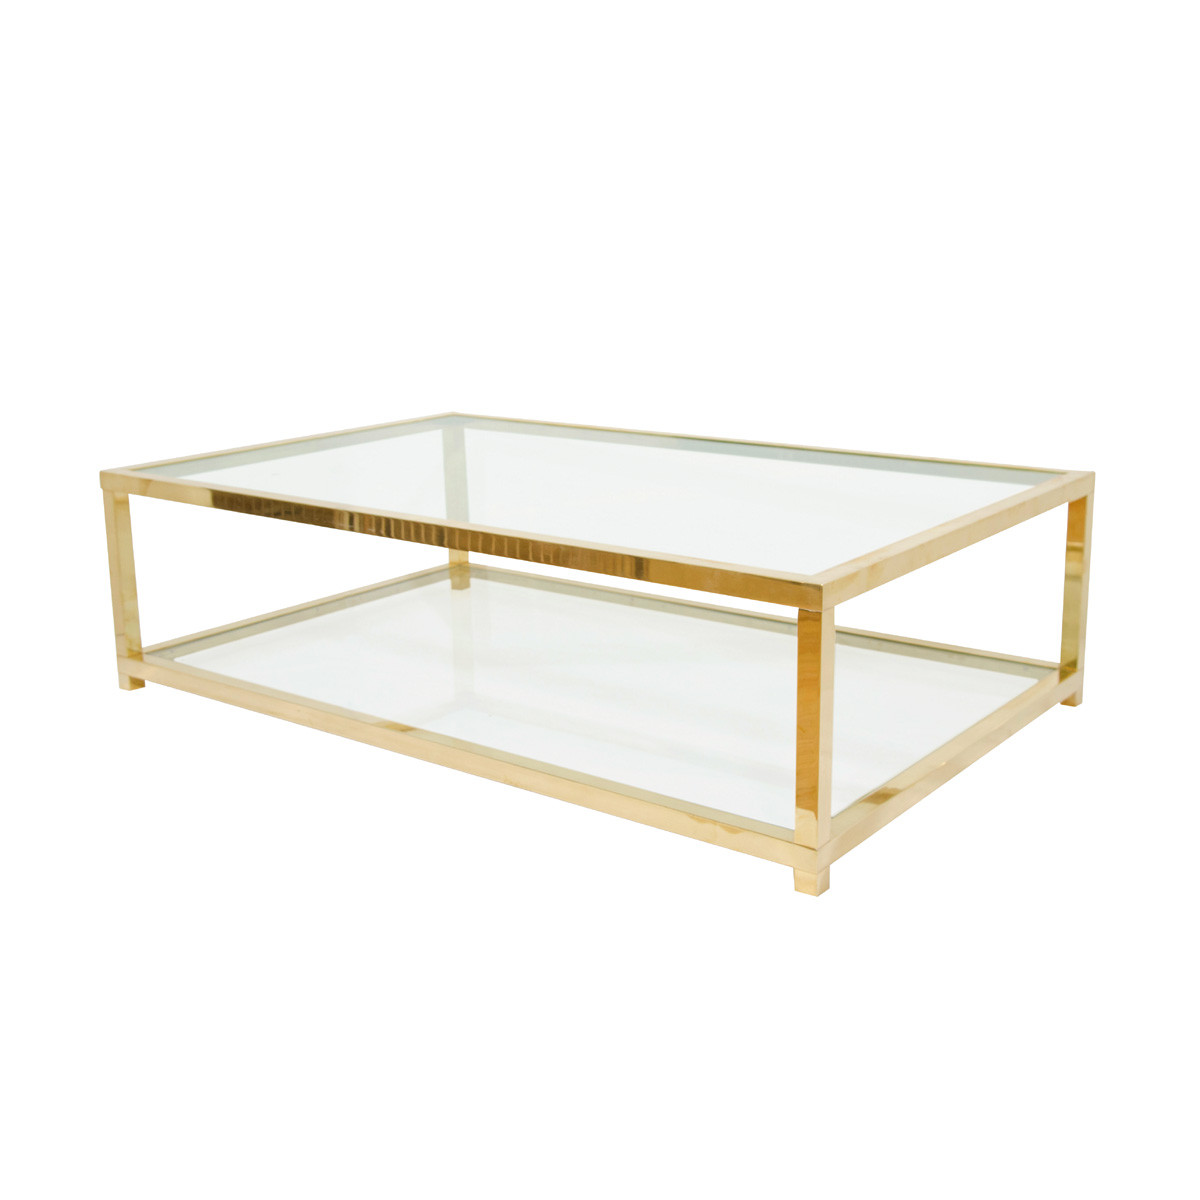 brass-glass-coffee-tables-classic-vintage-french-55-square-two-tier-brass-glass-coffee-table-finials (Image 2 of 10)